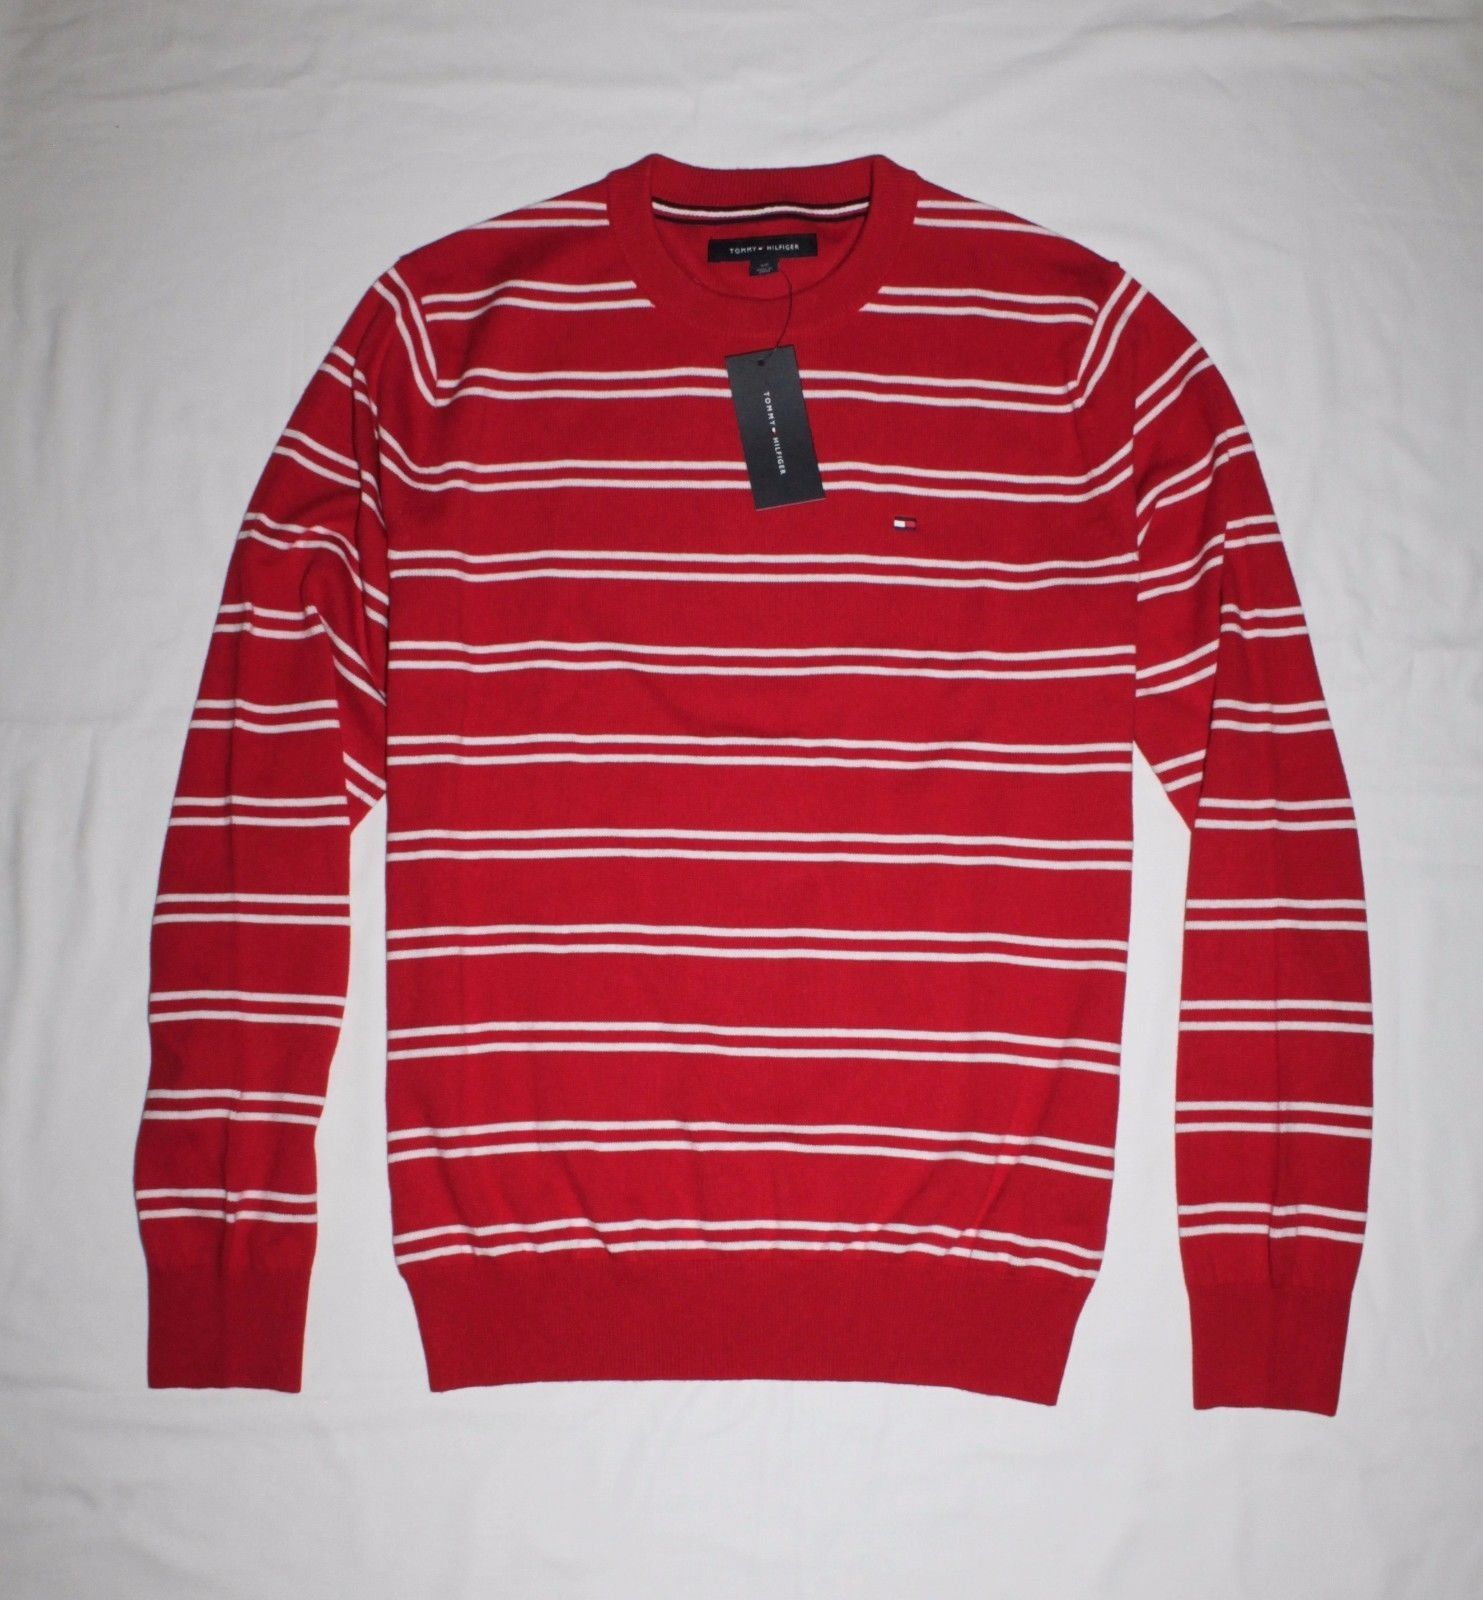 903a92e1 Tommy Hilfiger Classic Double Stripe Men`s Sweater - Red Price in ...